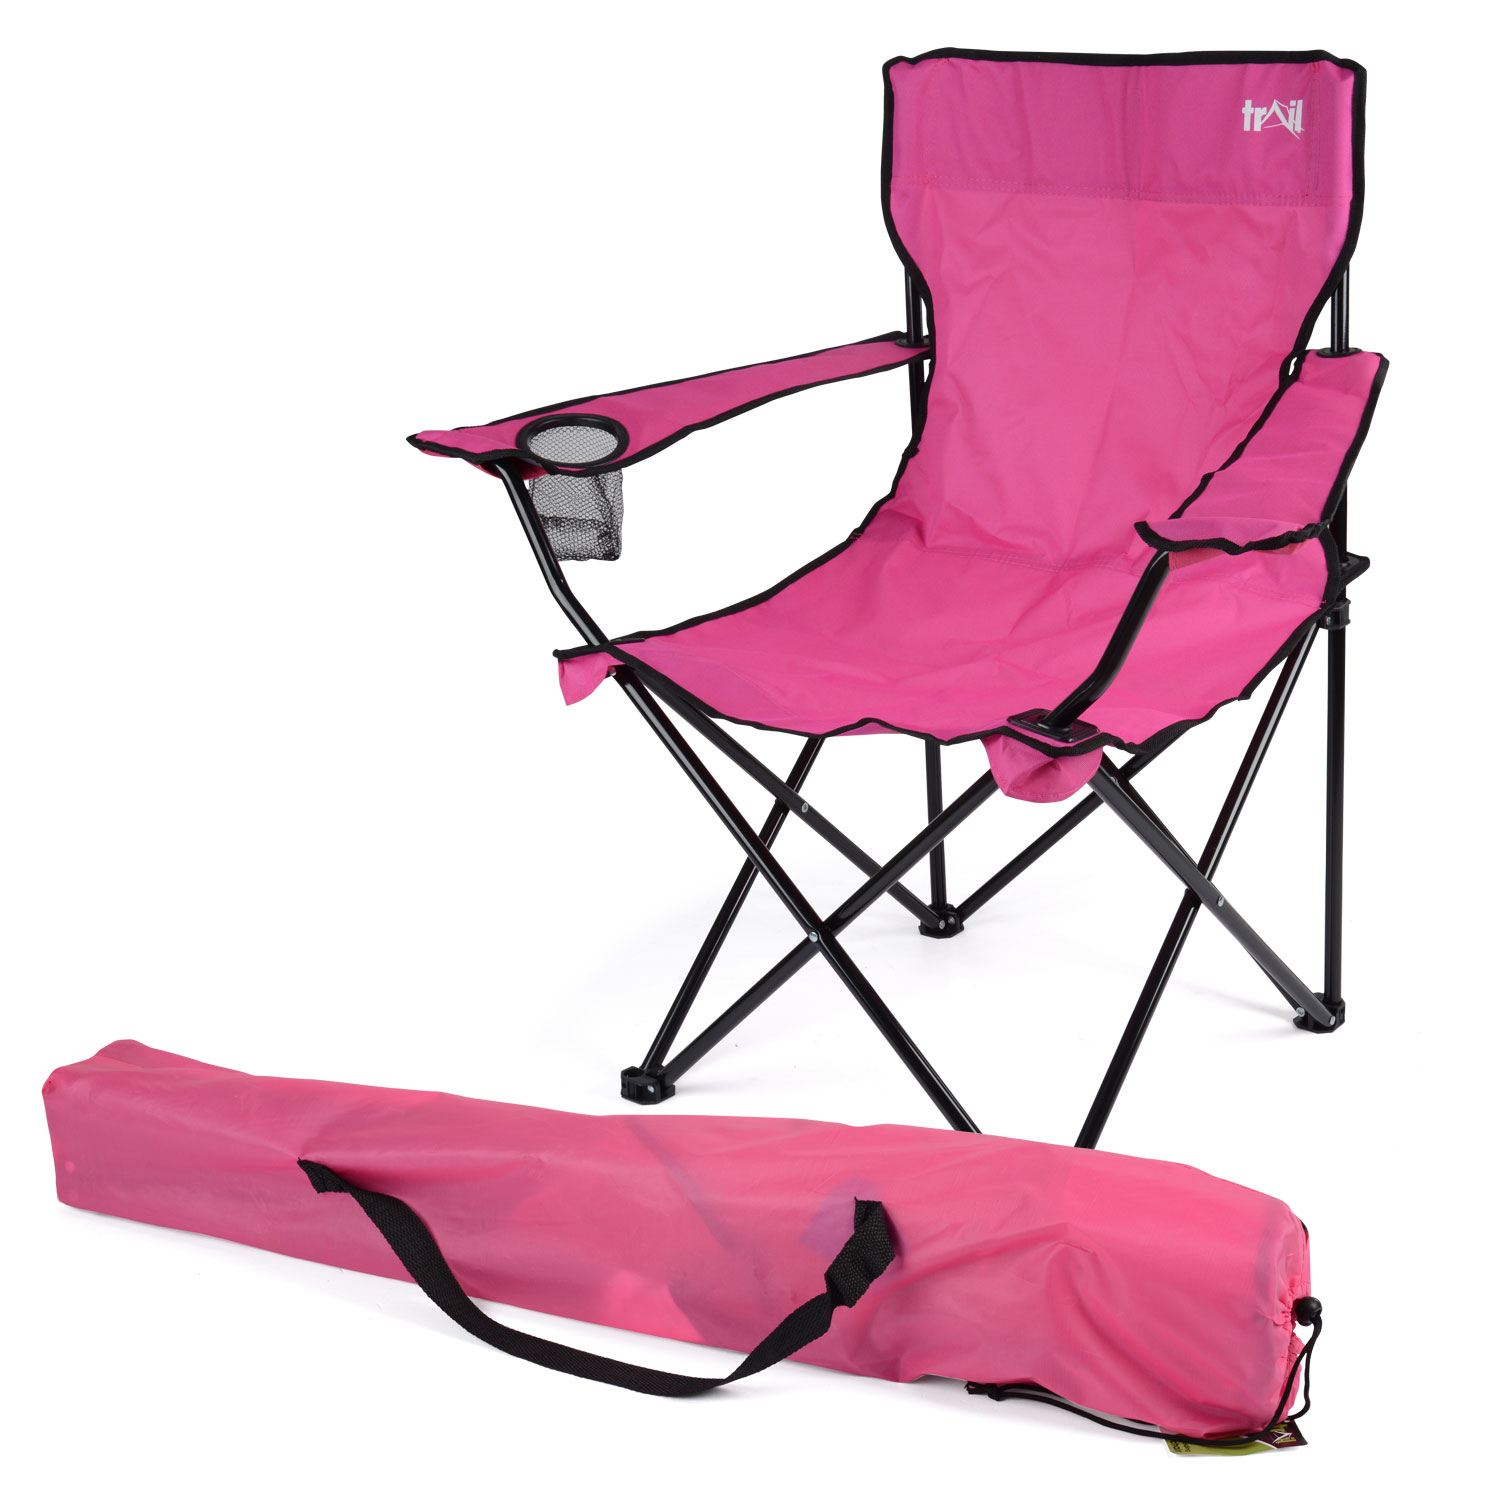 Folding Foldable Camping Beach Chair Fold Up Camp Festival Seat Fishing Chairs